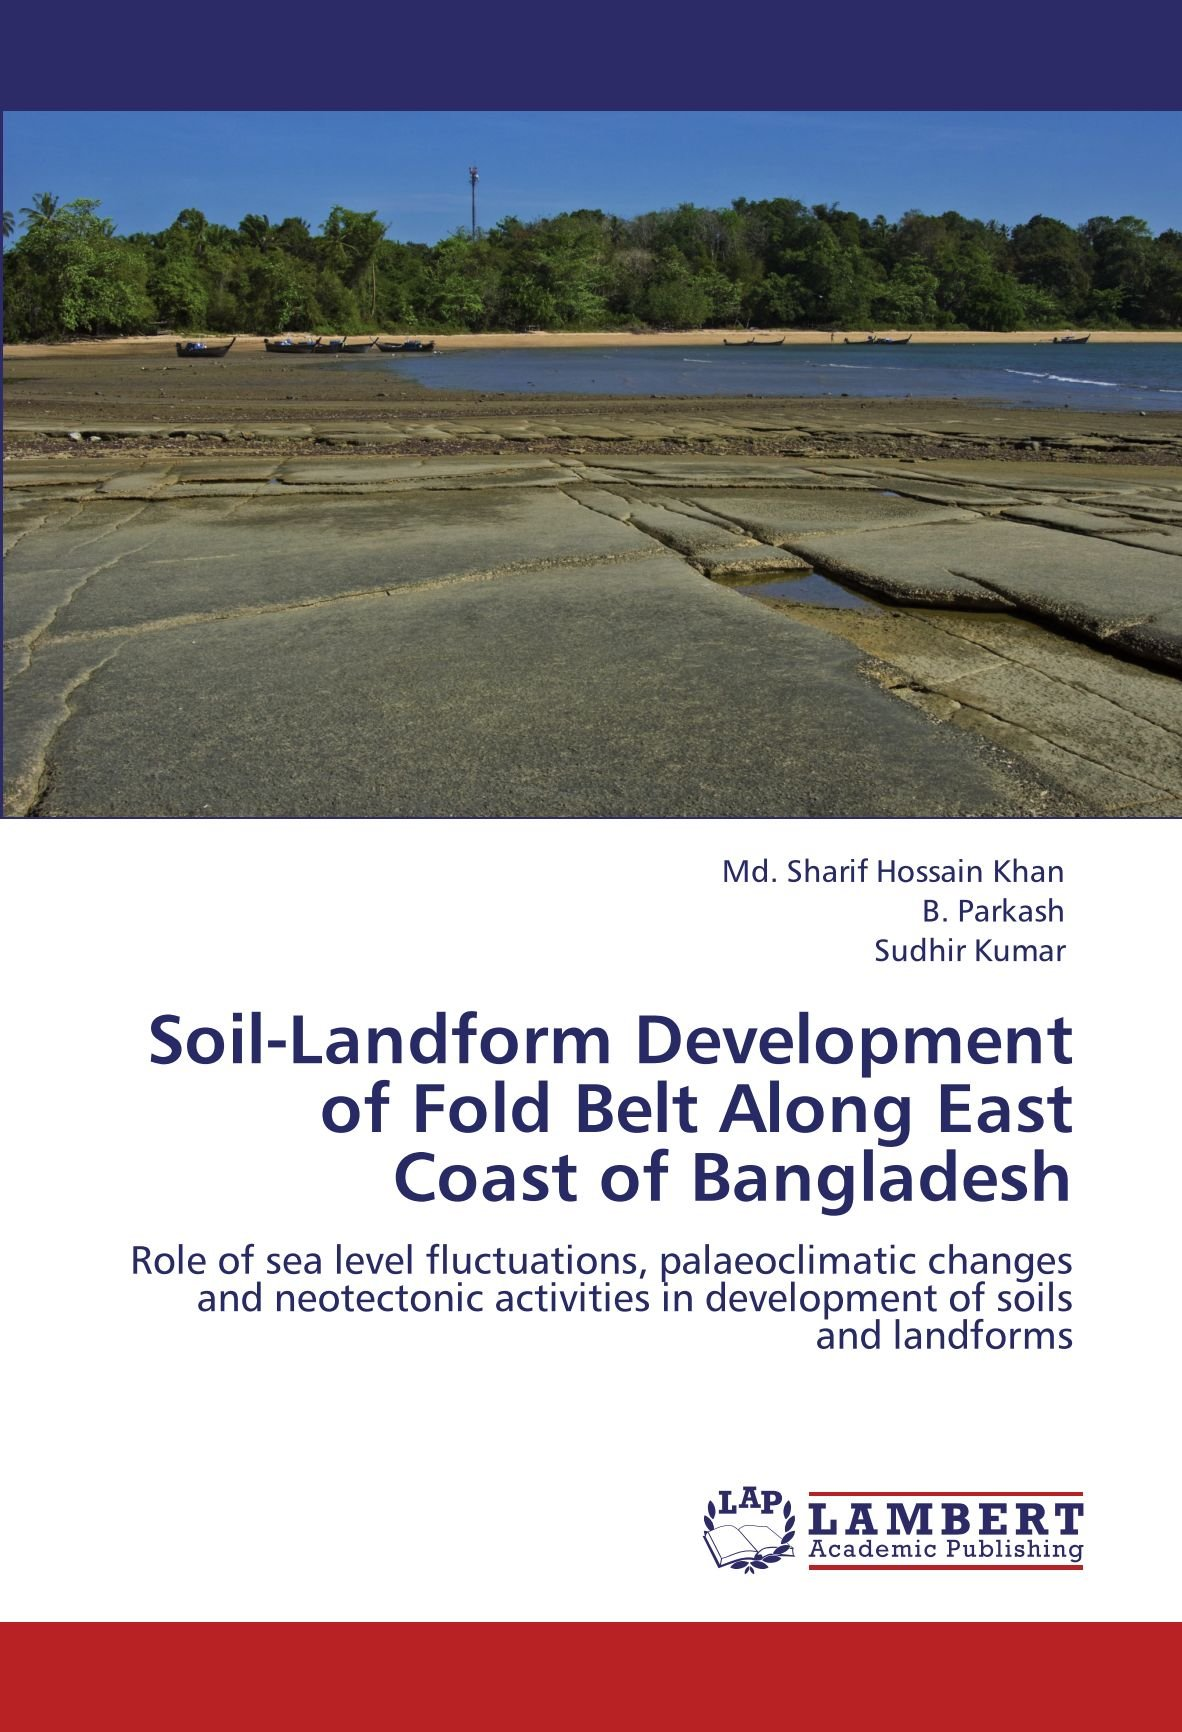 Soil-Landform Development of Fold Belt Along East Coast of